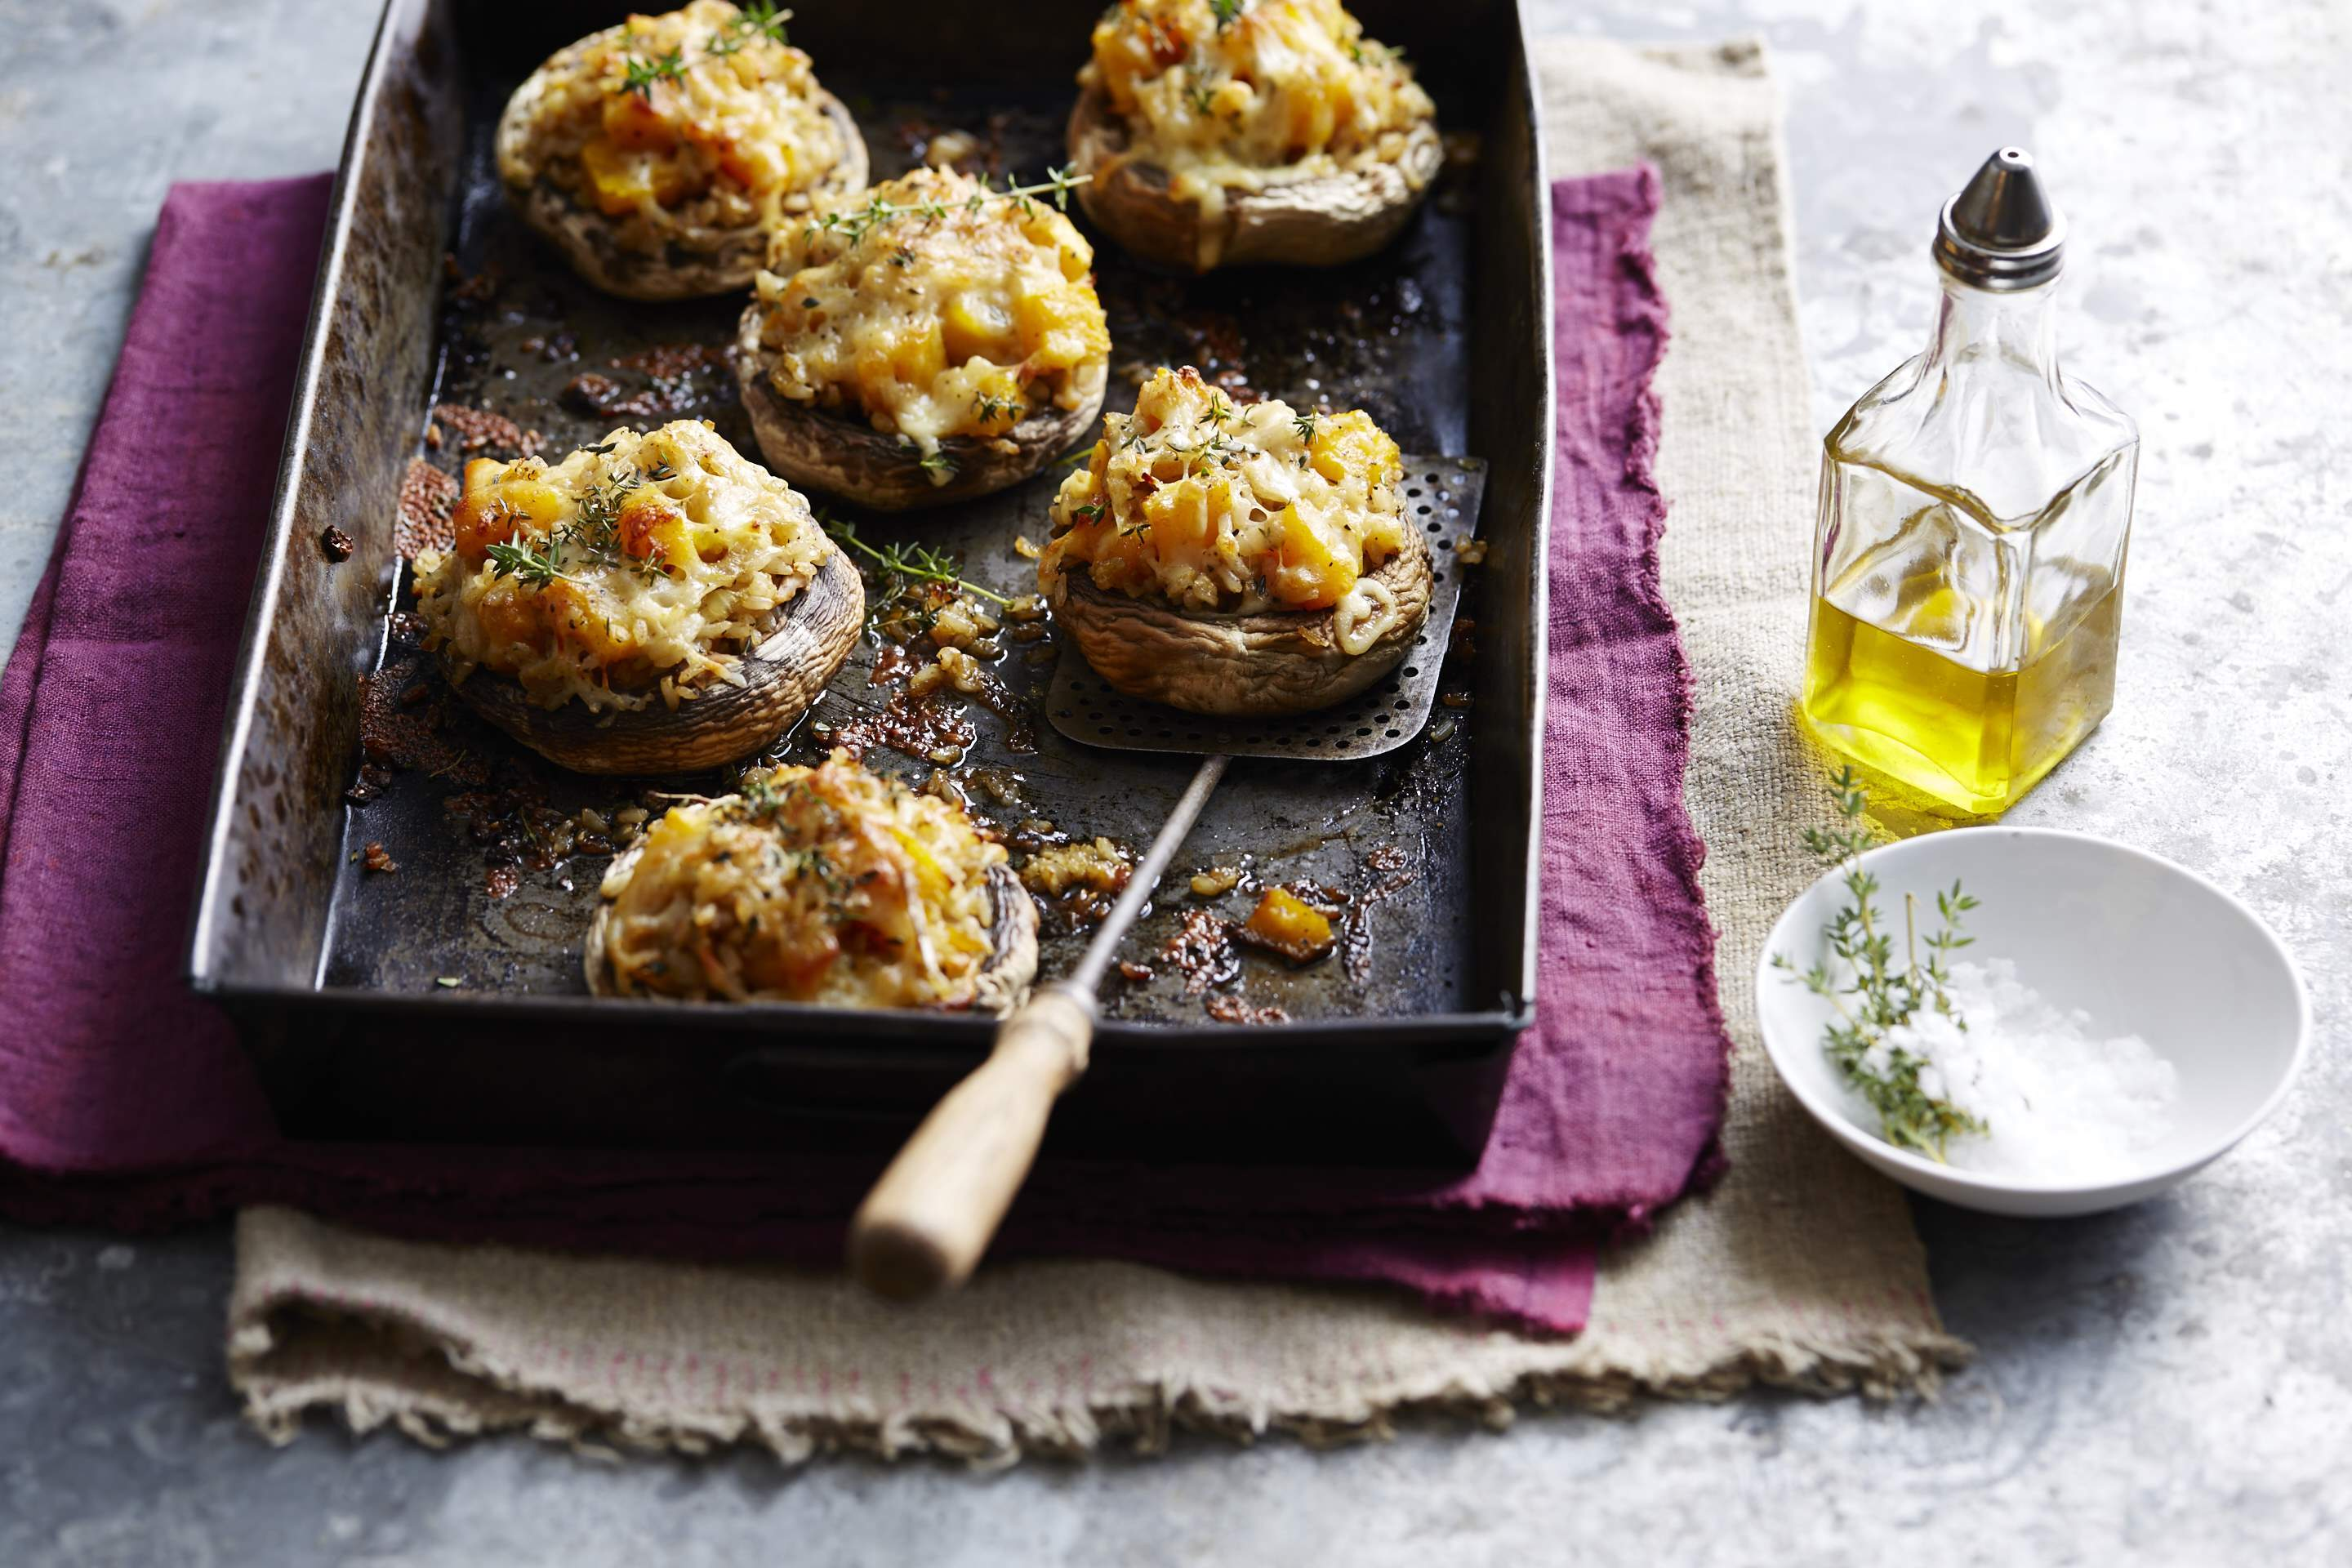 Stuffed mushrooms with brown rice